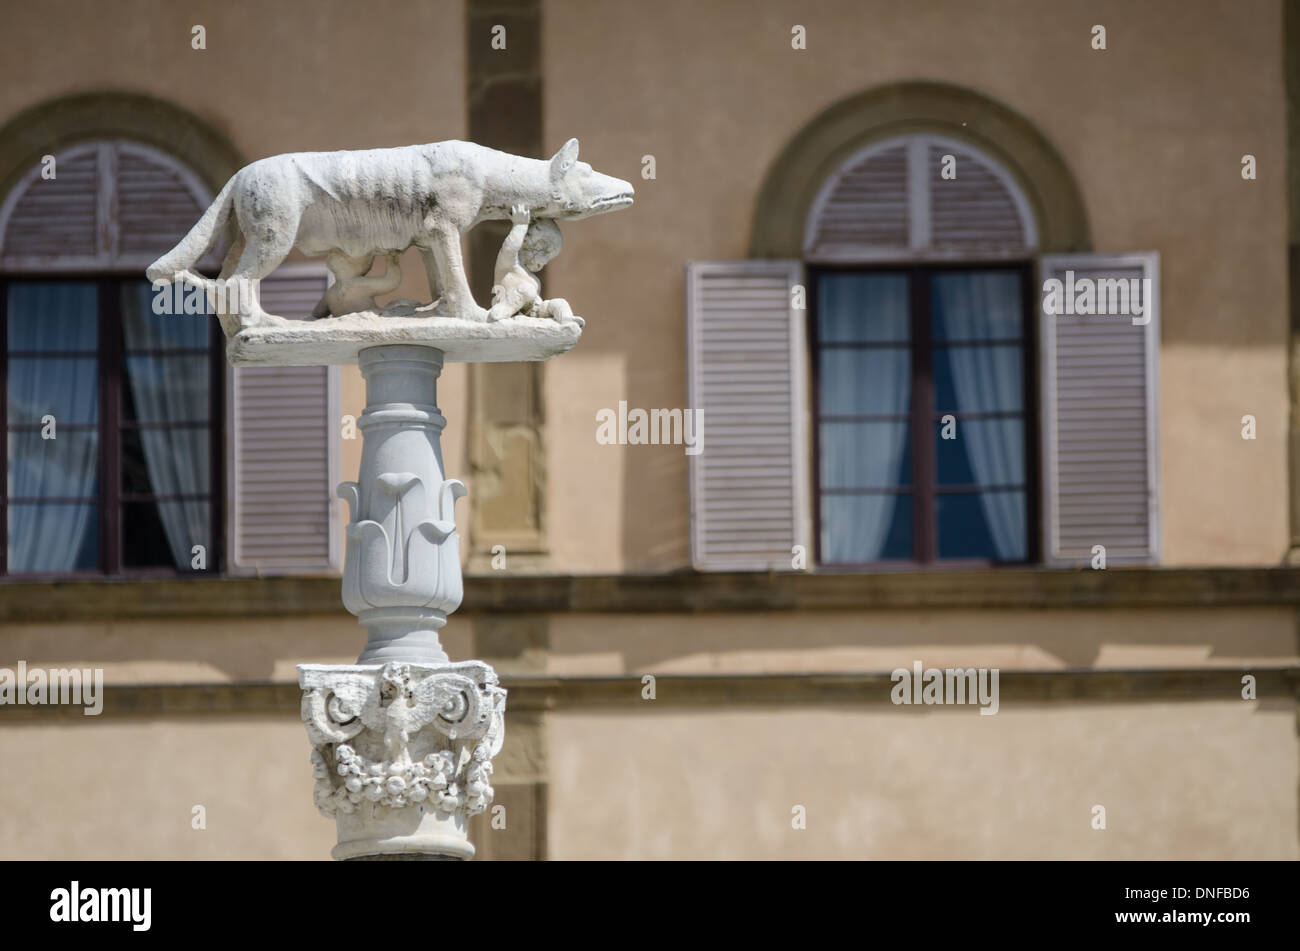 a view of a sculpture of she-wolf feeding romul and remus in siena of tuscany in italy - Stock Image